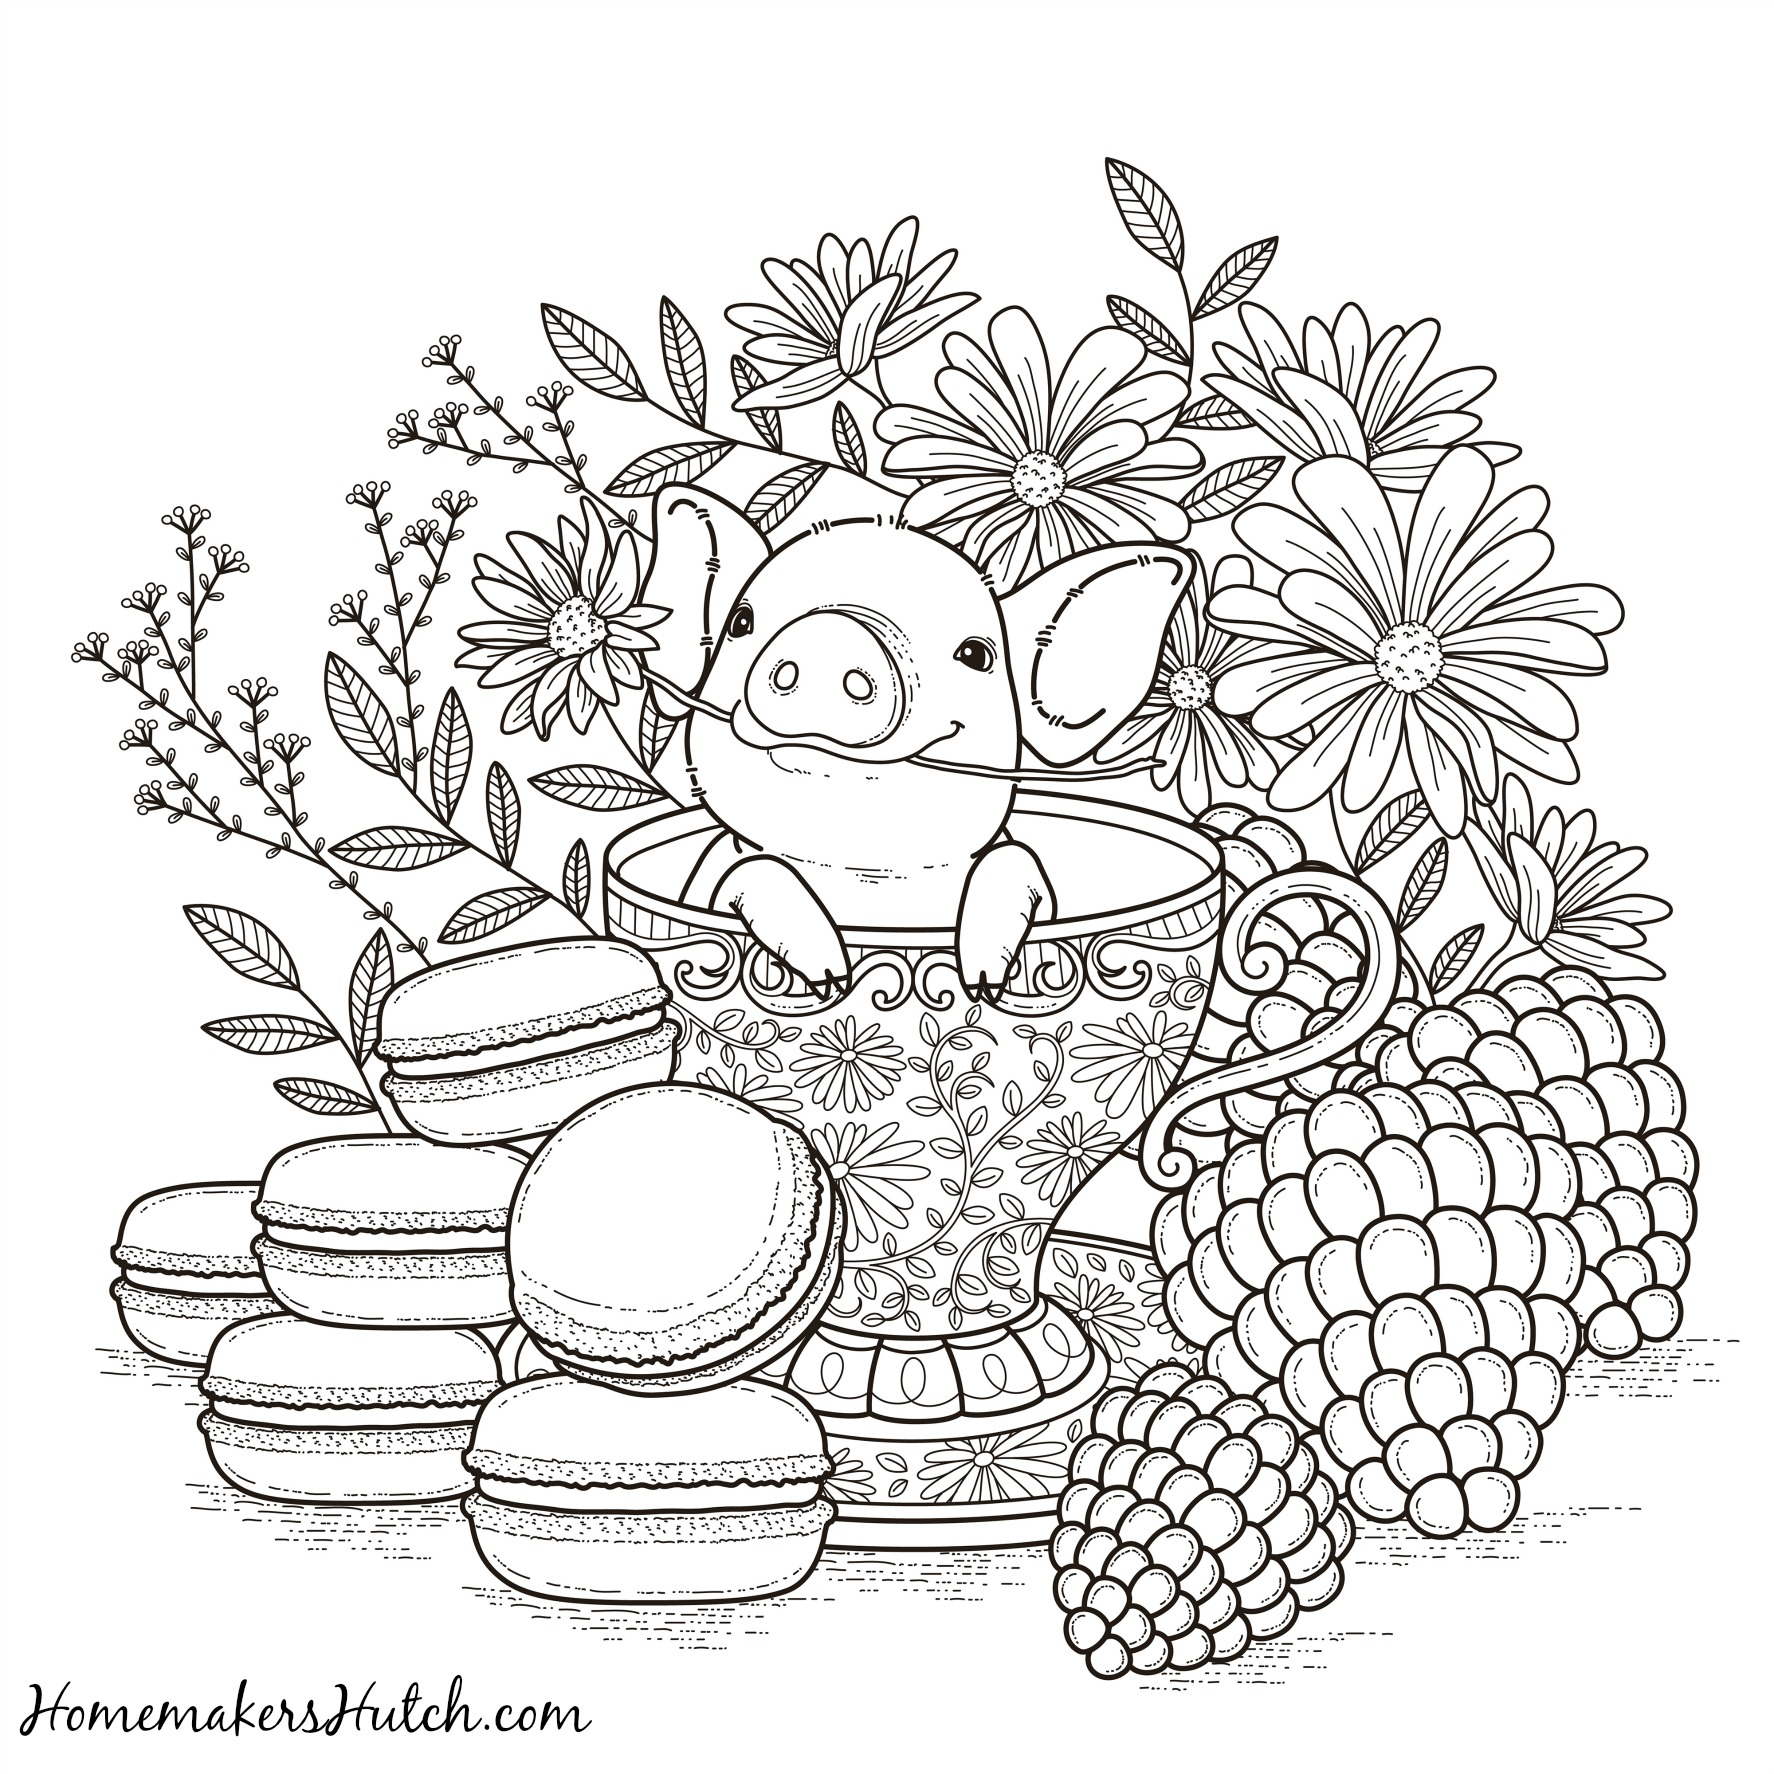 Teacup Coloring Pages Printable At Getdrawings Com Free For